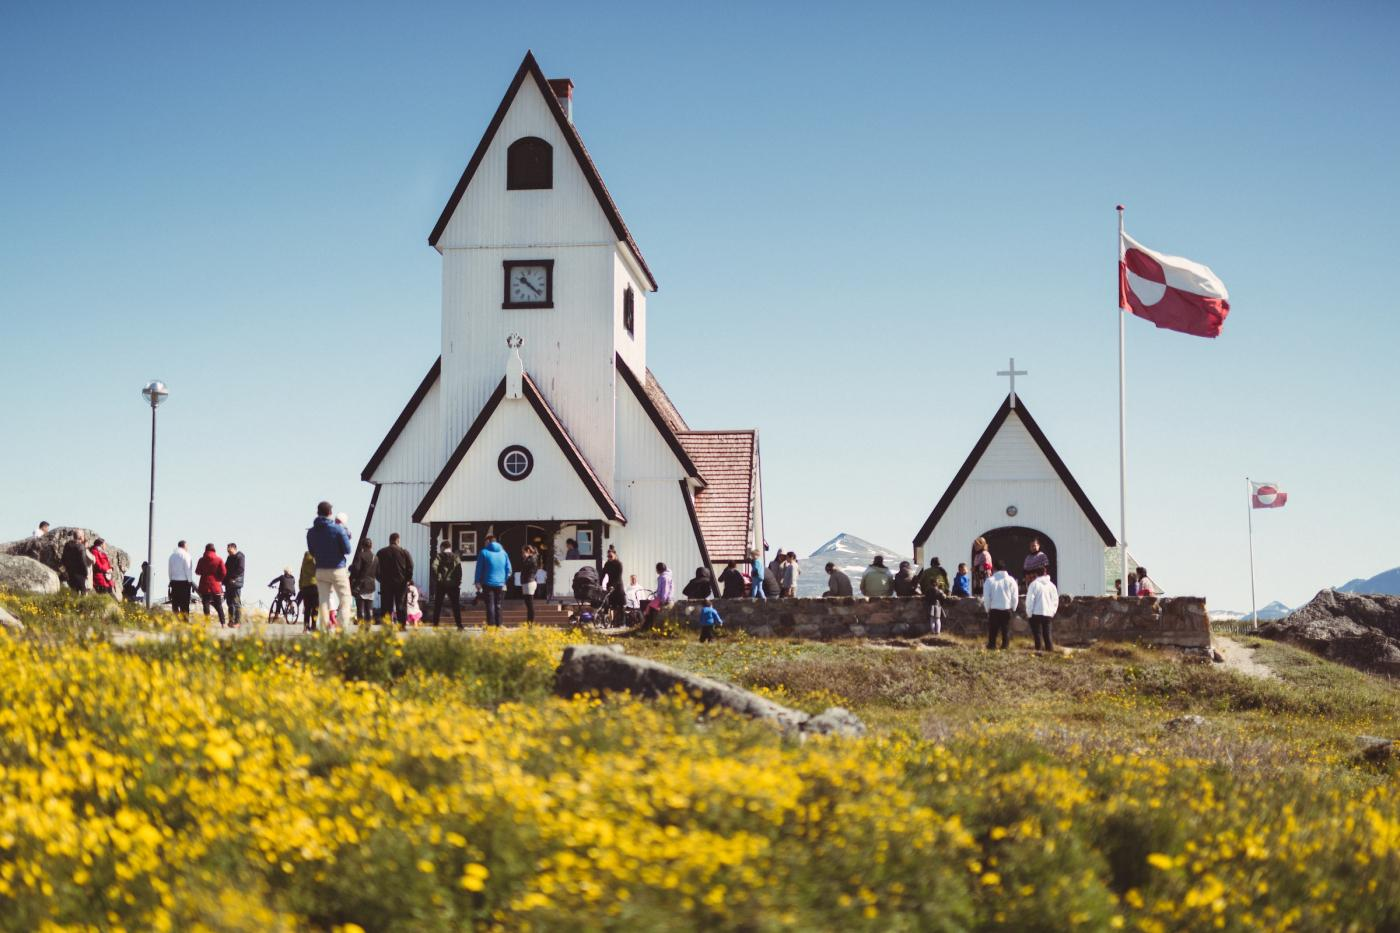 A sunny day at the Nanortalik church in South Greenland. Photo by Mads Pihl - Visit Greenland